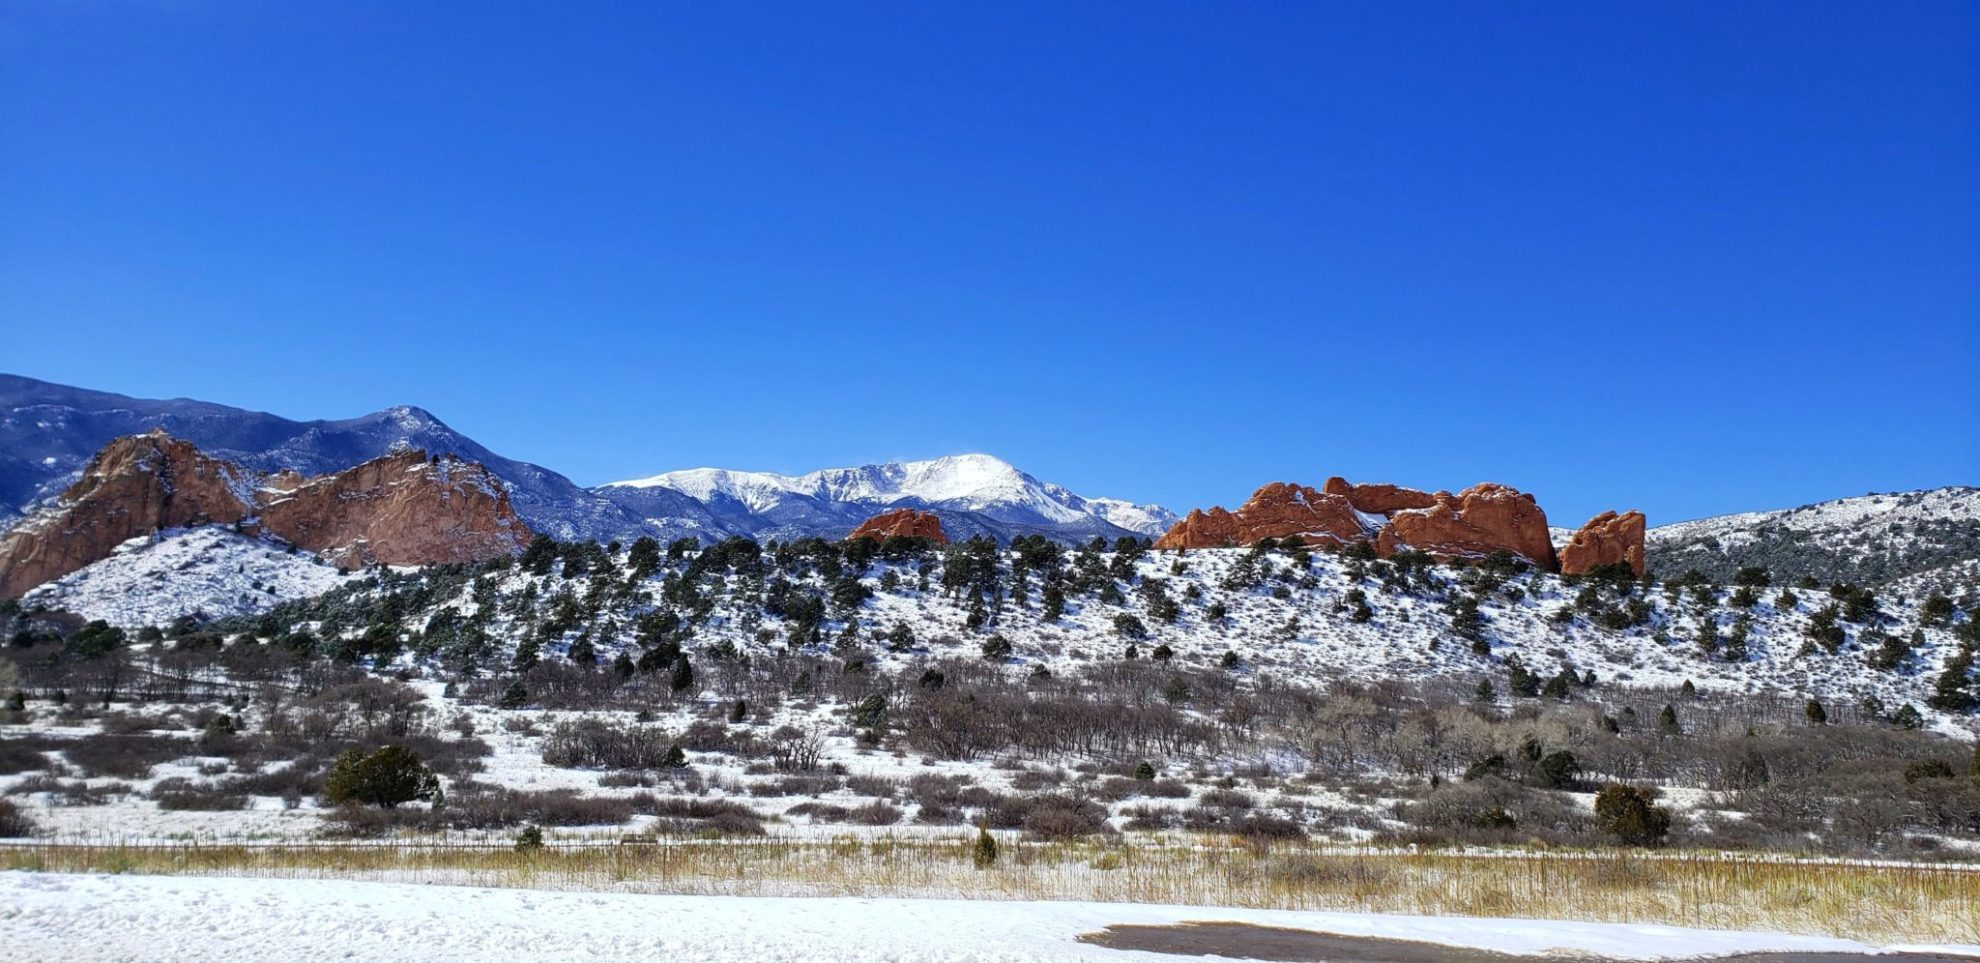 View of Garden of the Gods with Pikes Peak in the distance